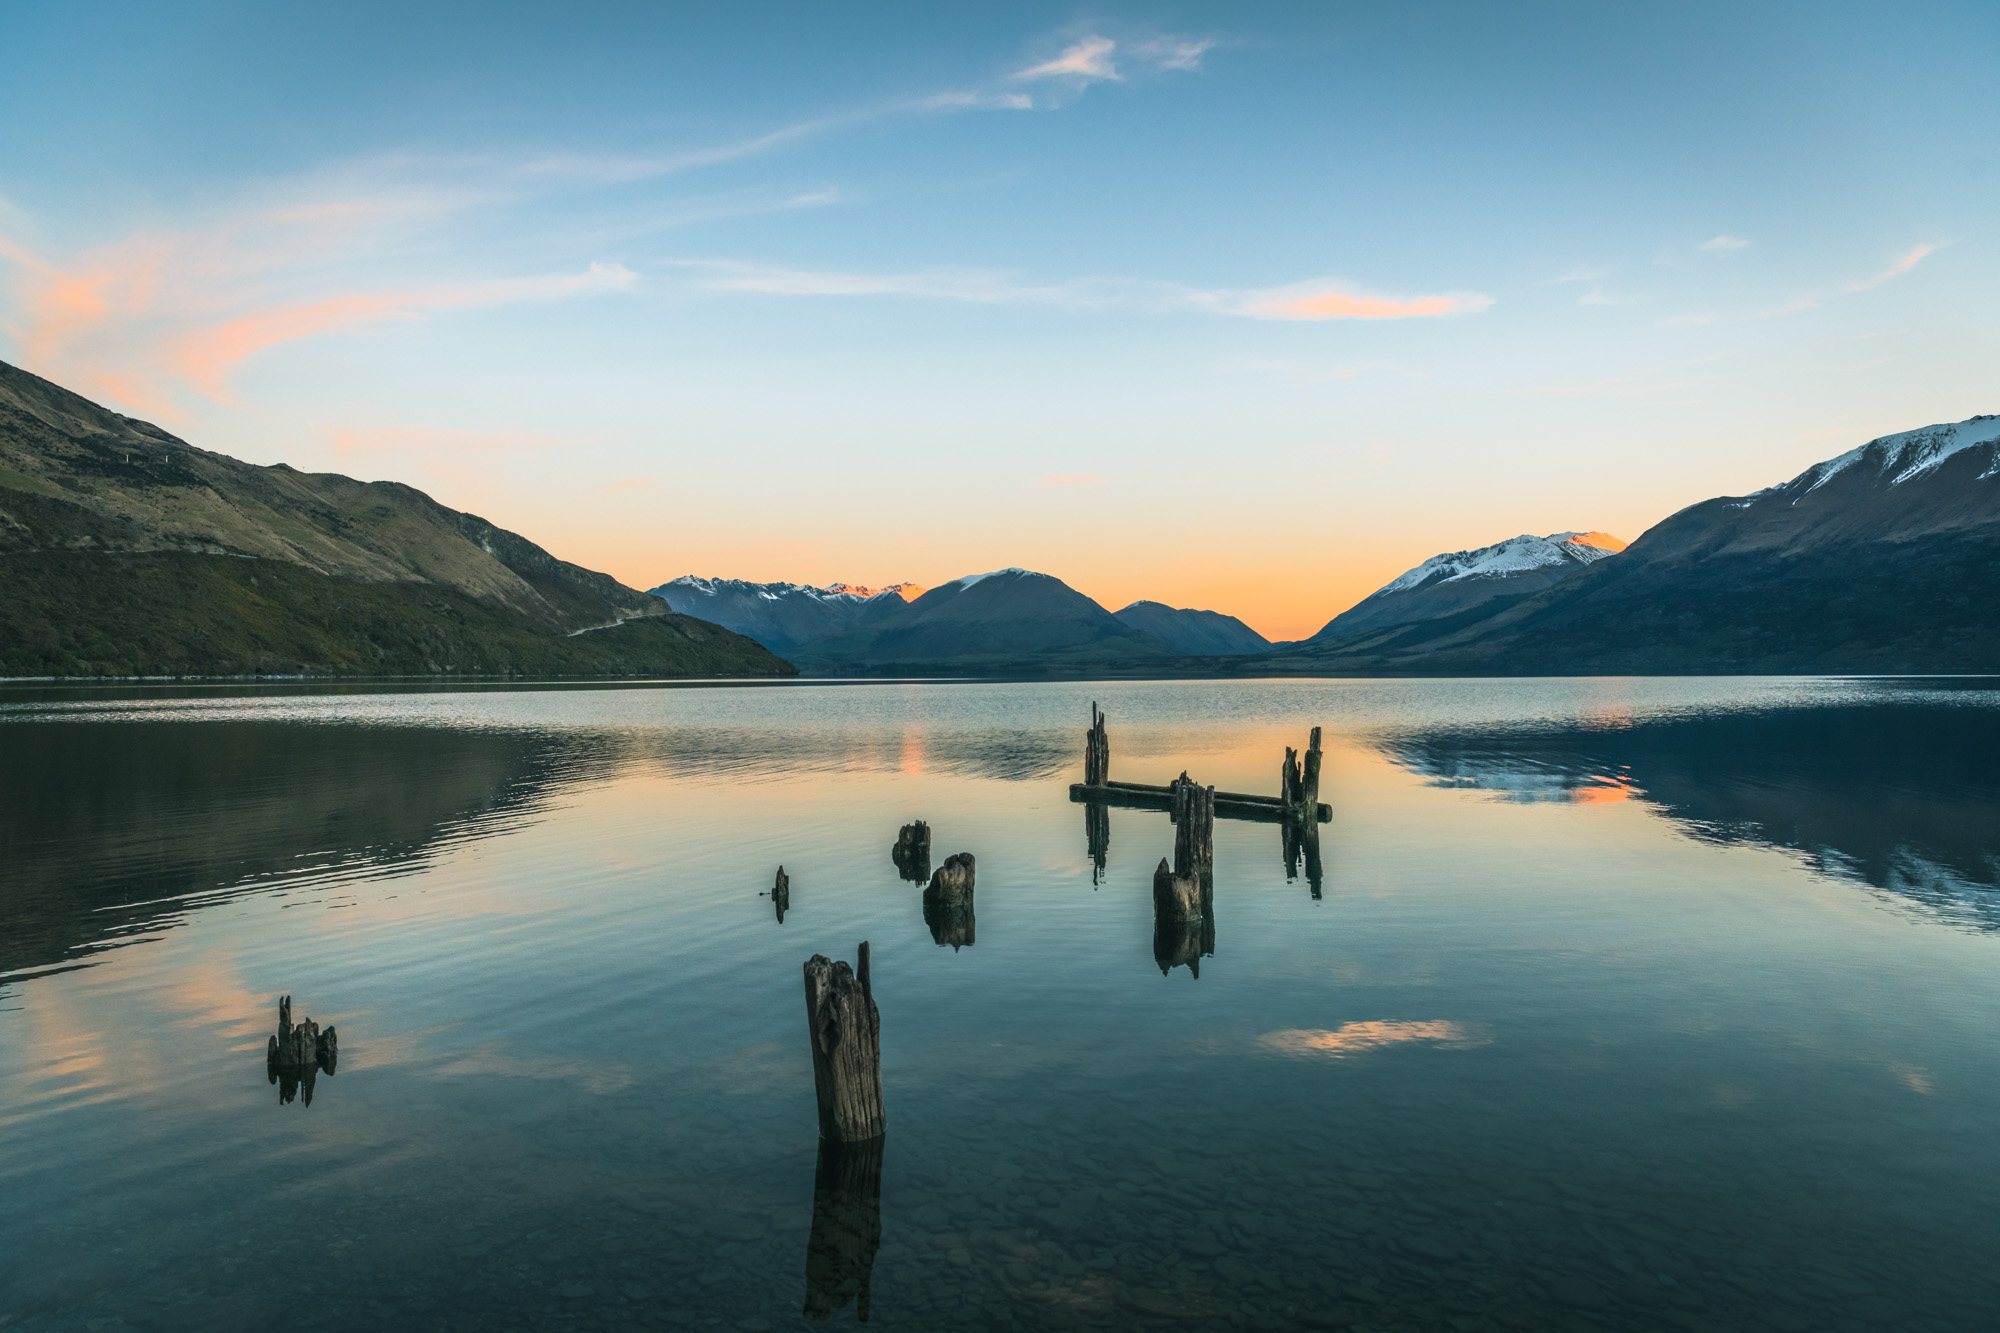 Meiklejohns Wharf - The Road To Glenorchy